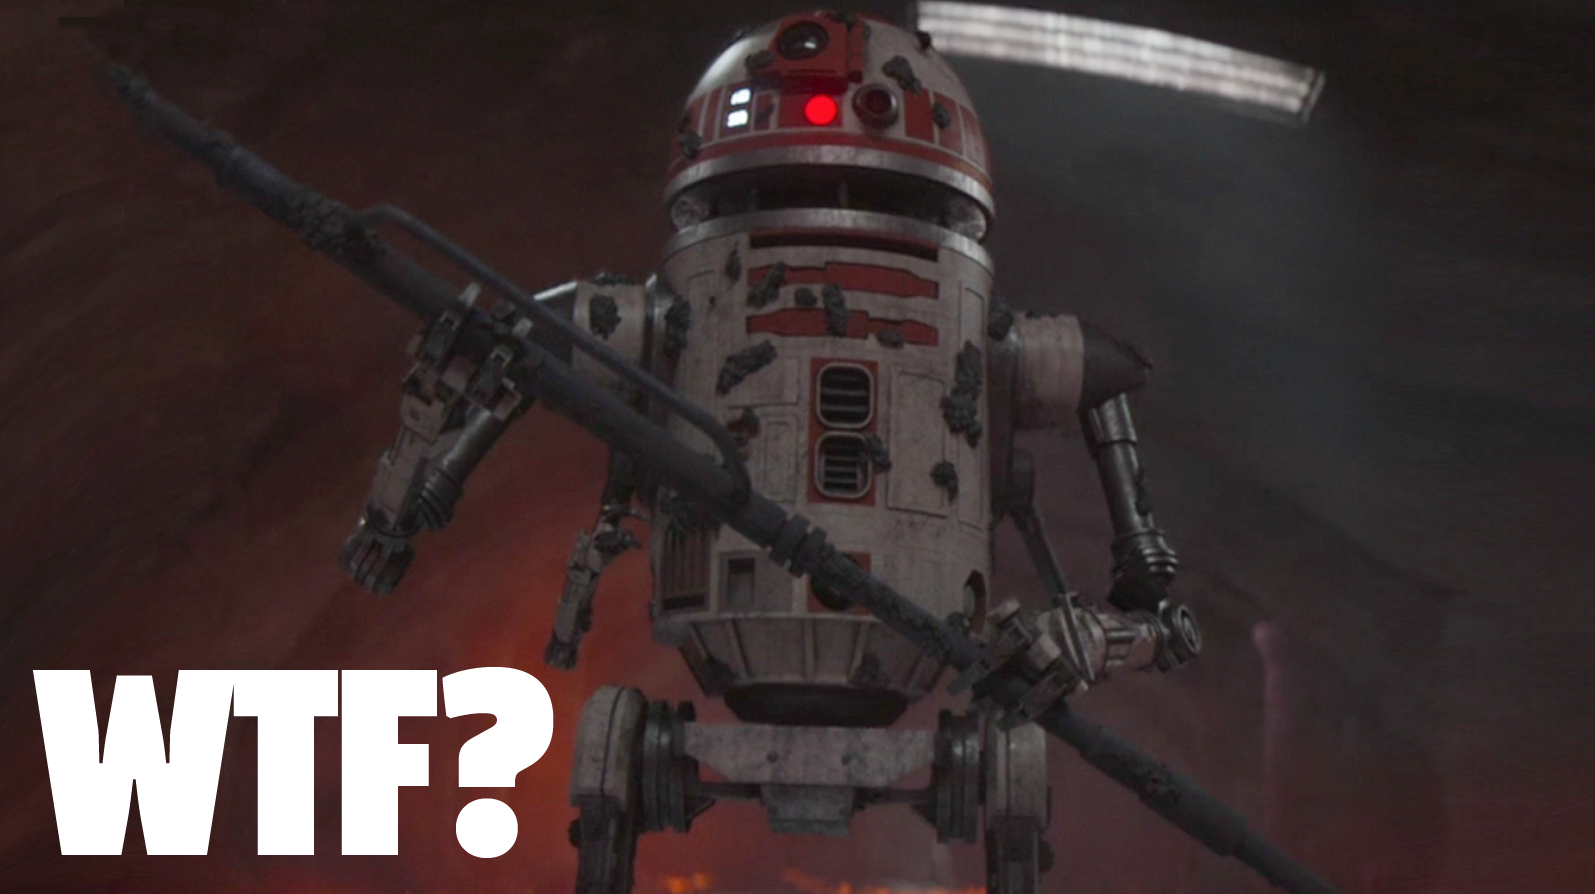 I Haven't Even Seen The Last Episode Of The Mandalorian Yet But We Have To Talk About That Droid